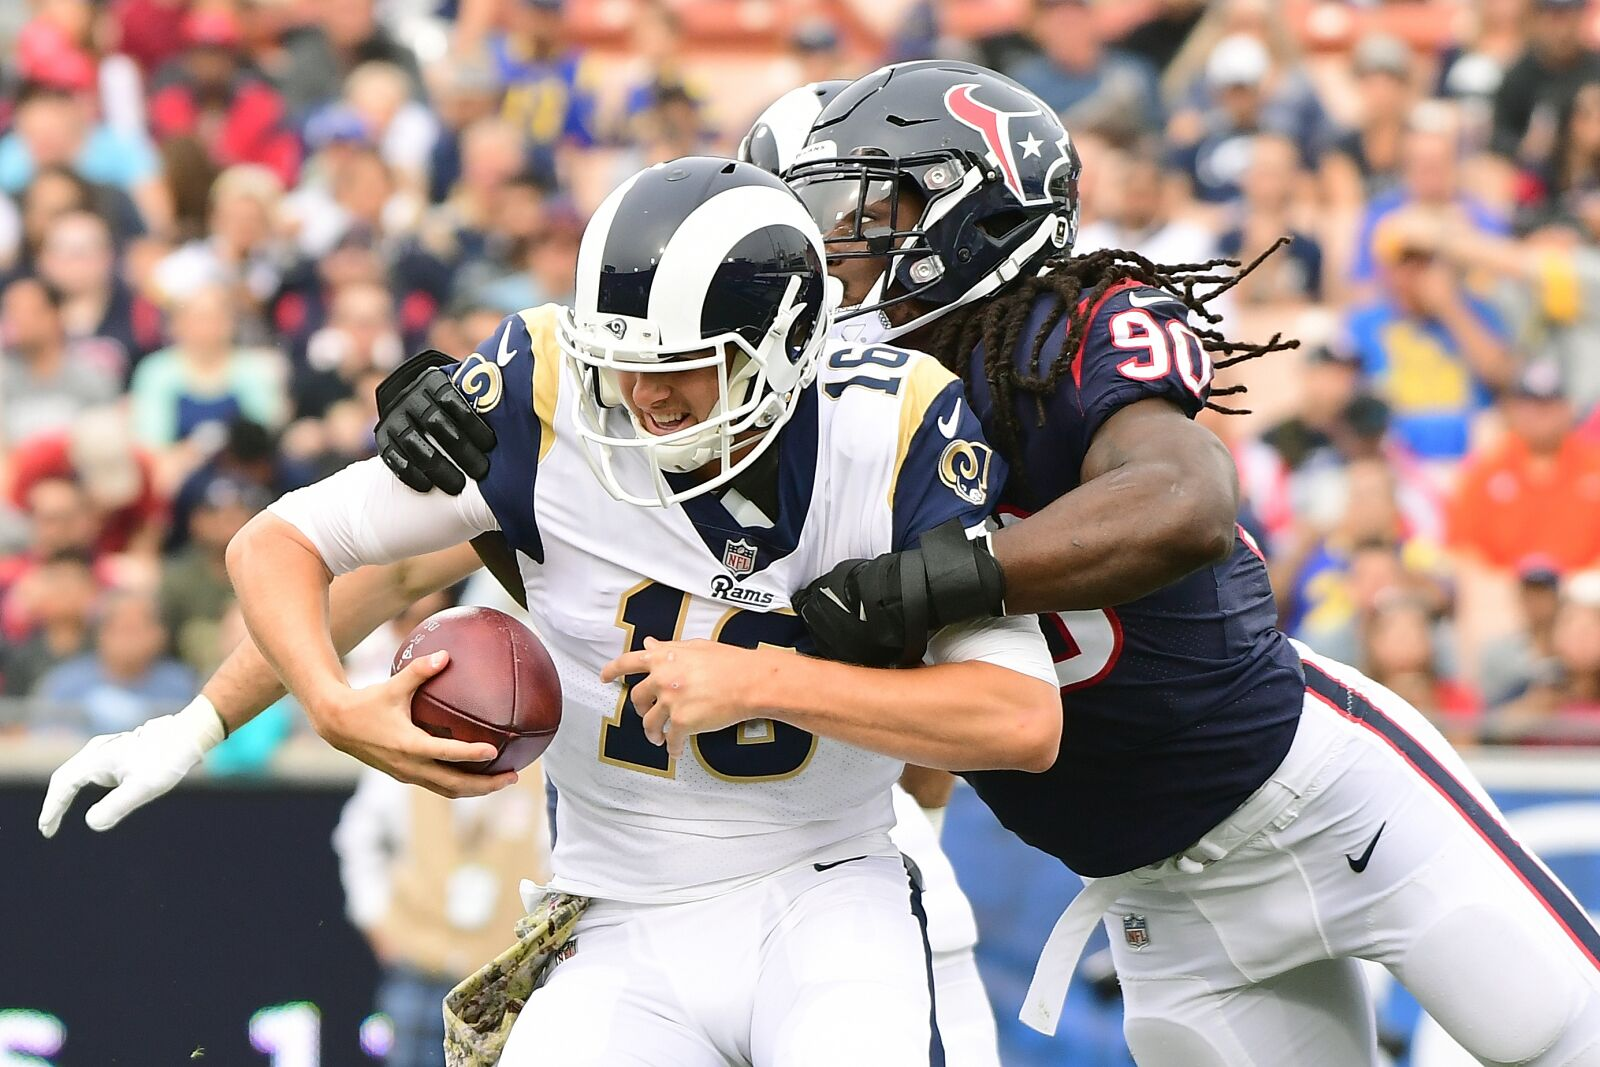 Jadeveon Clowney could be in for his best season yet